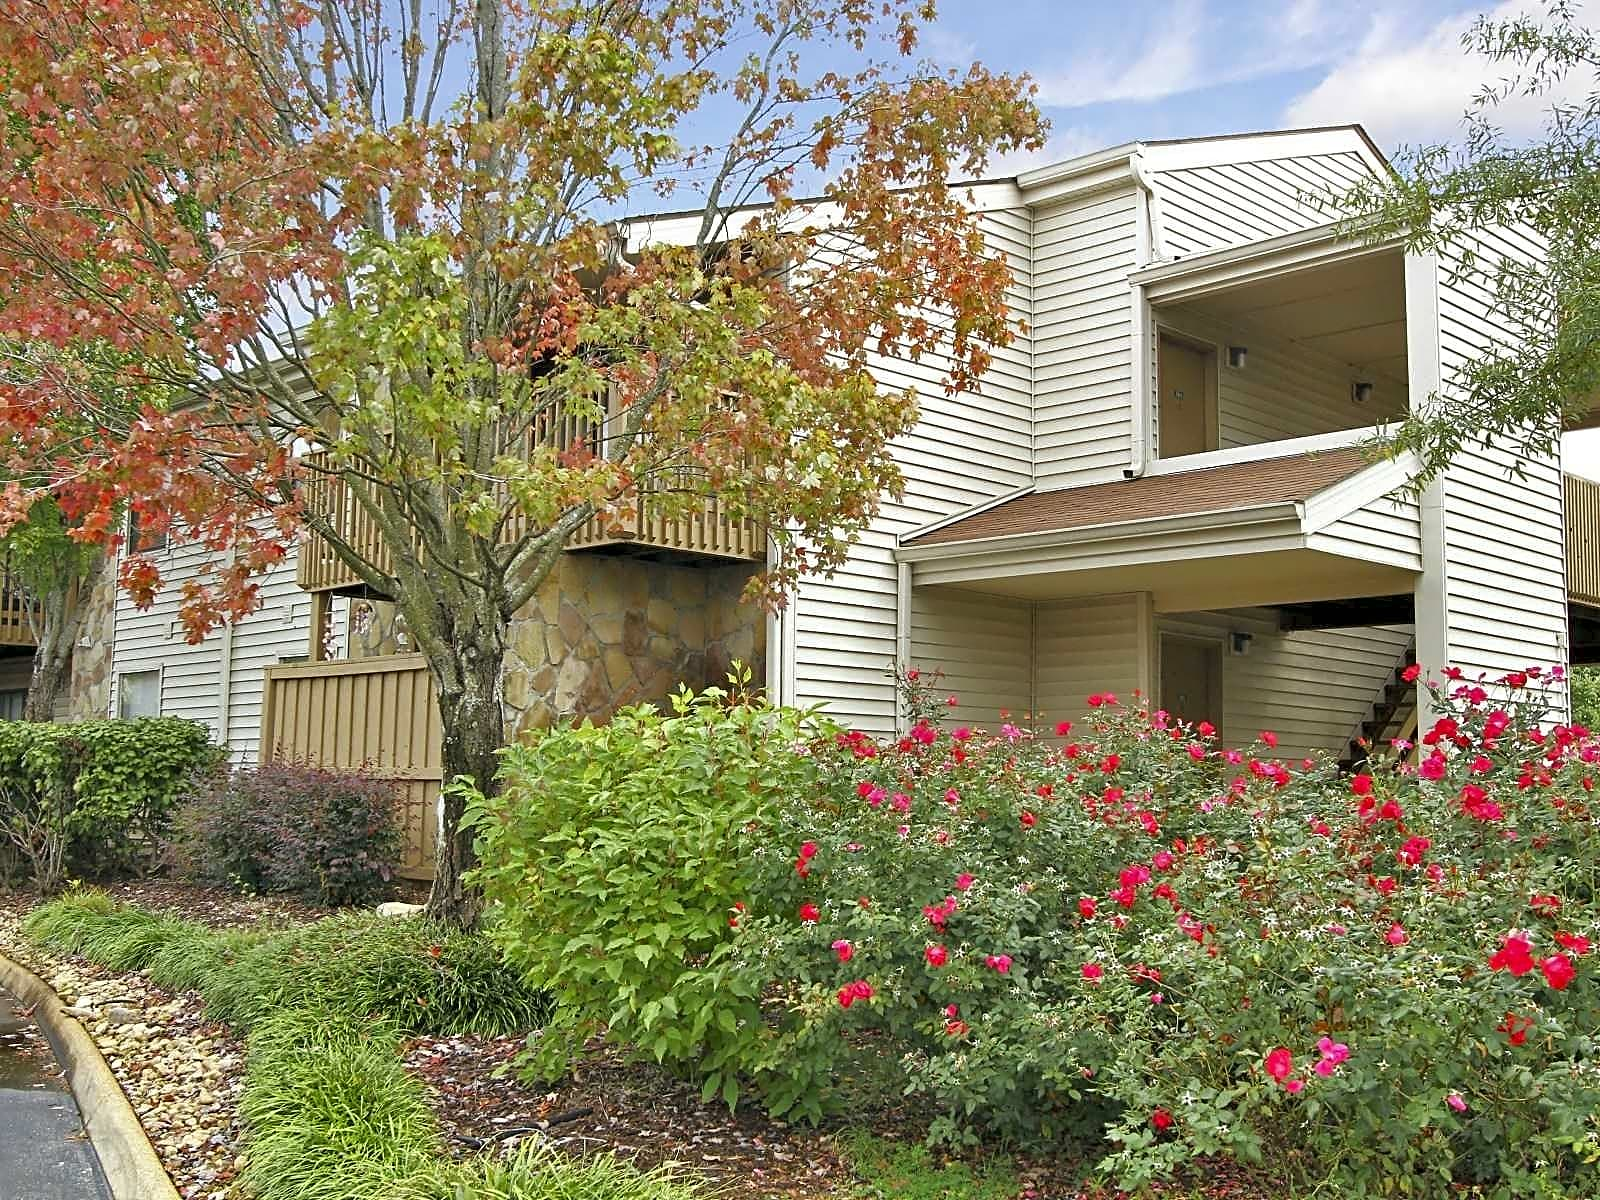 Photo: Chattanooga Apartment for Rent - $533.00 / month; 1 Bd & 1 Ba